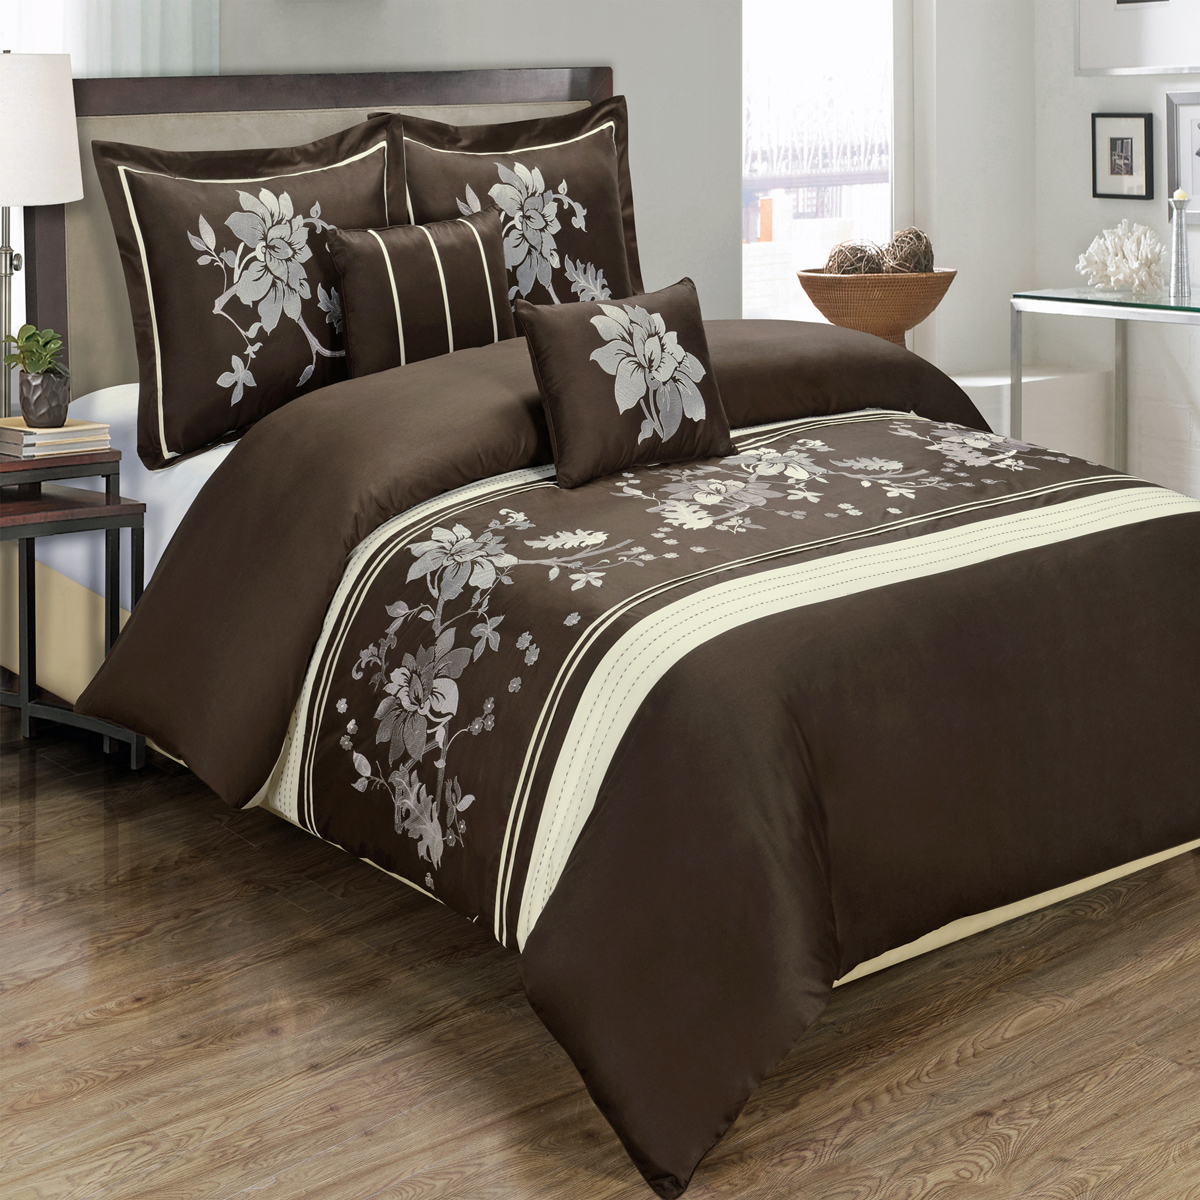 Luxury Myra 100% Cotton 6-Piece Duvet Cover, 2 Shams, 2 Decorative Pillows And One White Down Alternative Comforter Set